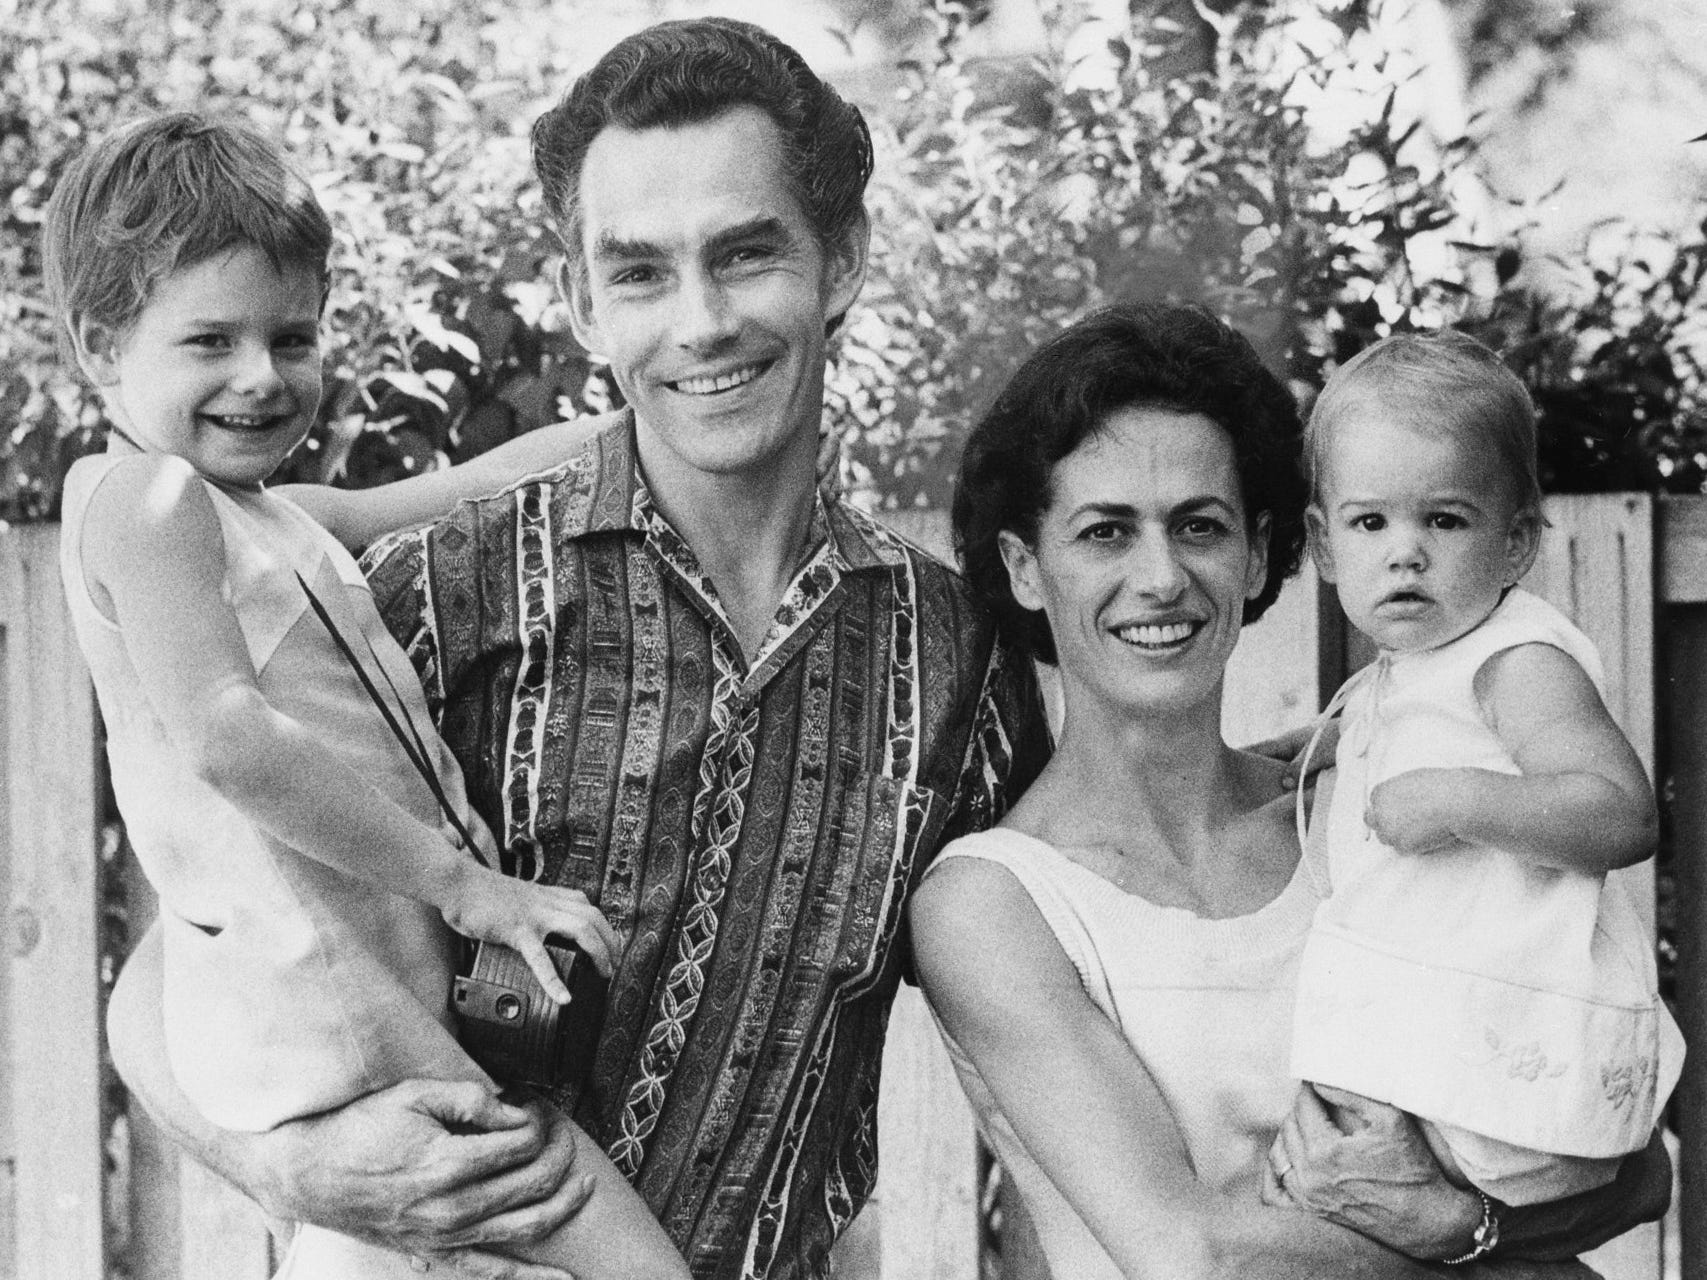 Kenneth Schermerhorn and his wife, Lupe Serrano, psoe with their children, Erica (left) and Veronica, on the lawn of their new home in Whitefish Bay in this portrait, published in the Aug. 21, 1968, Milwaukee Journal. Schermerhorn was about to start his new job as conductor and music director of the Milwaueke Symphony Orchestra.